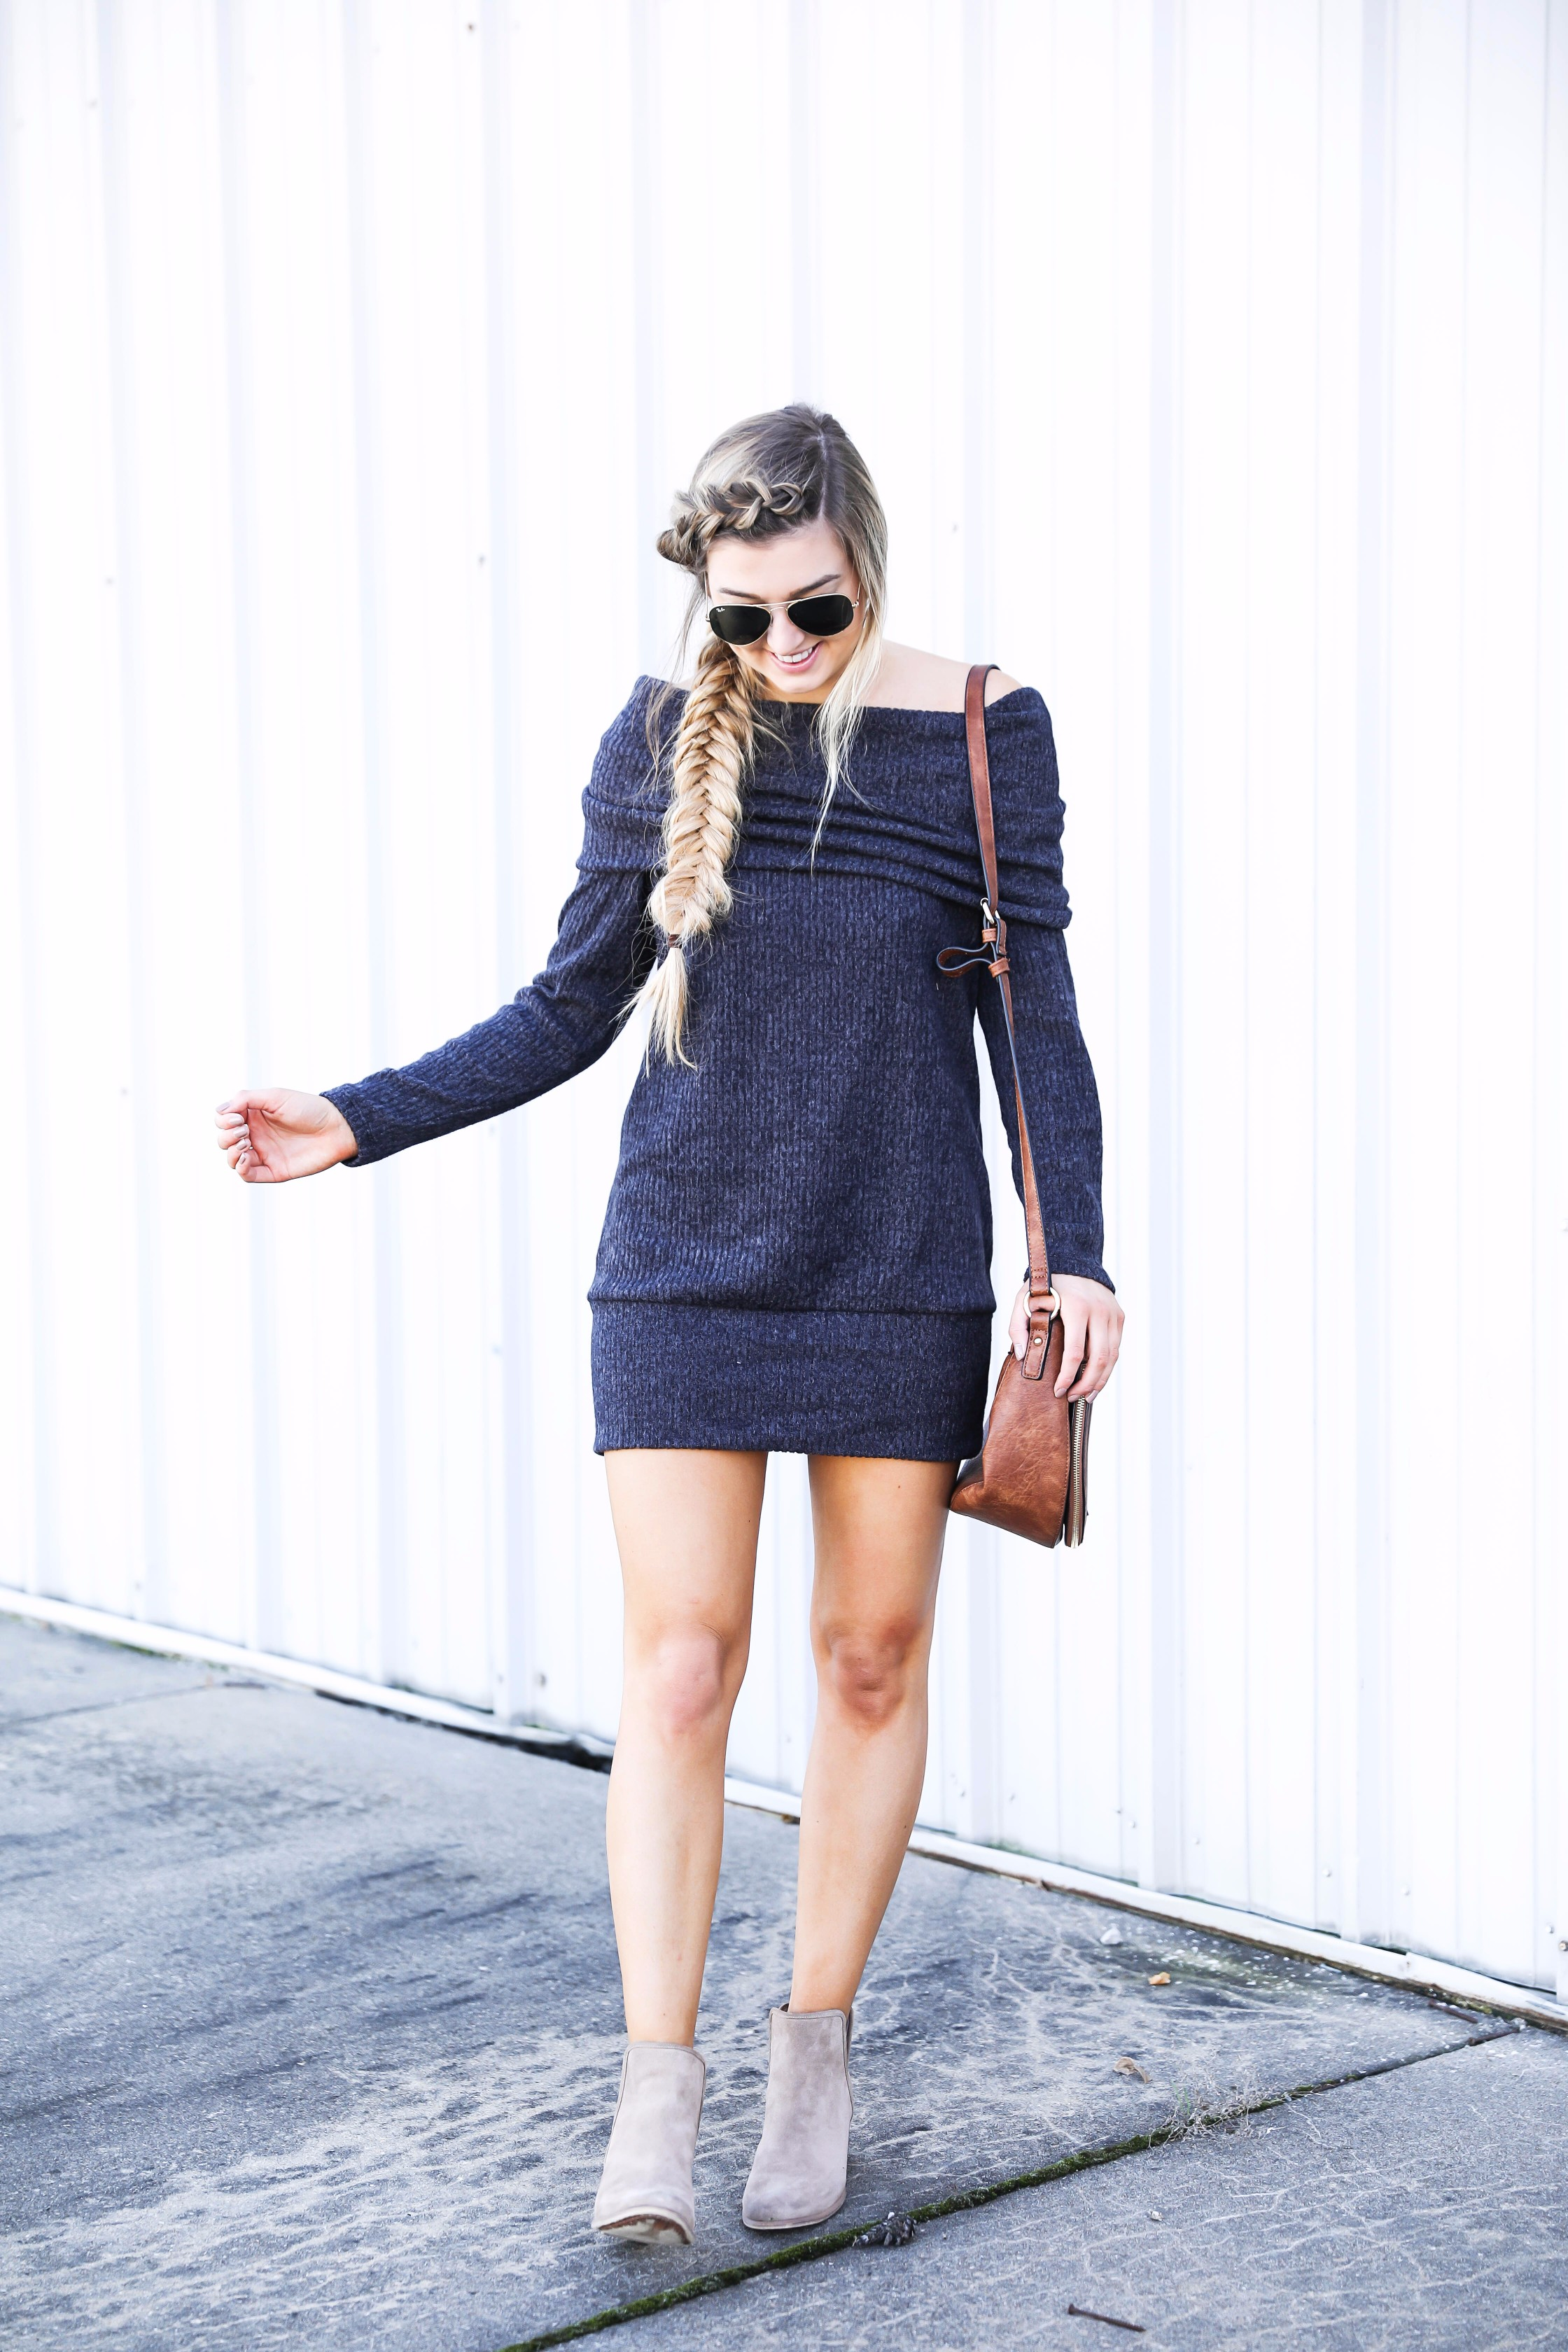 Off the shoulder sweater dress from BooHoo! Seriously the softest sweater ever! Get the details on fashion blog daily dose of charm by lauren lindmark